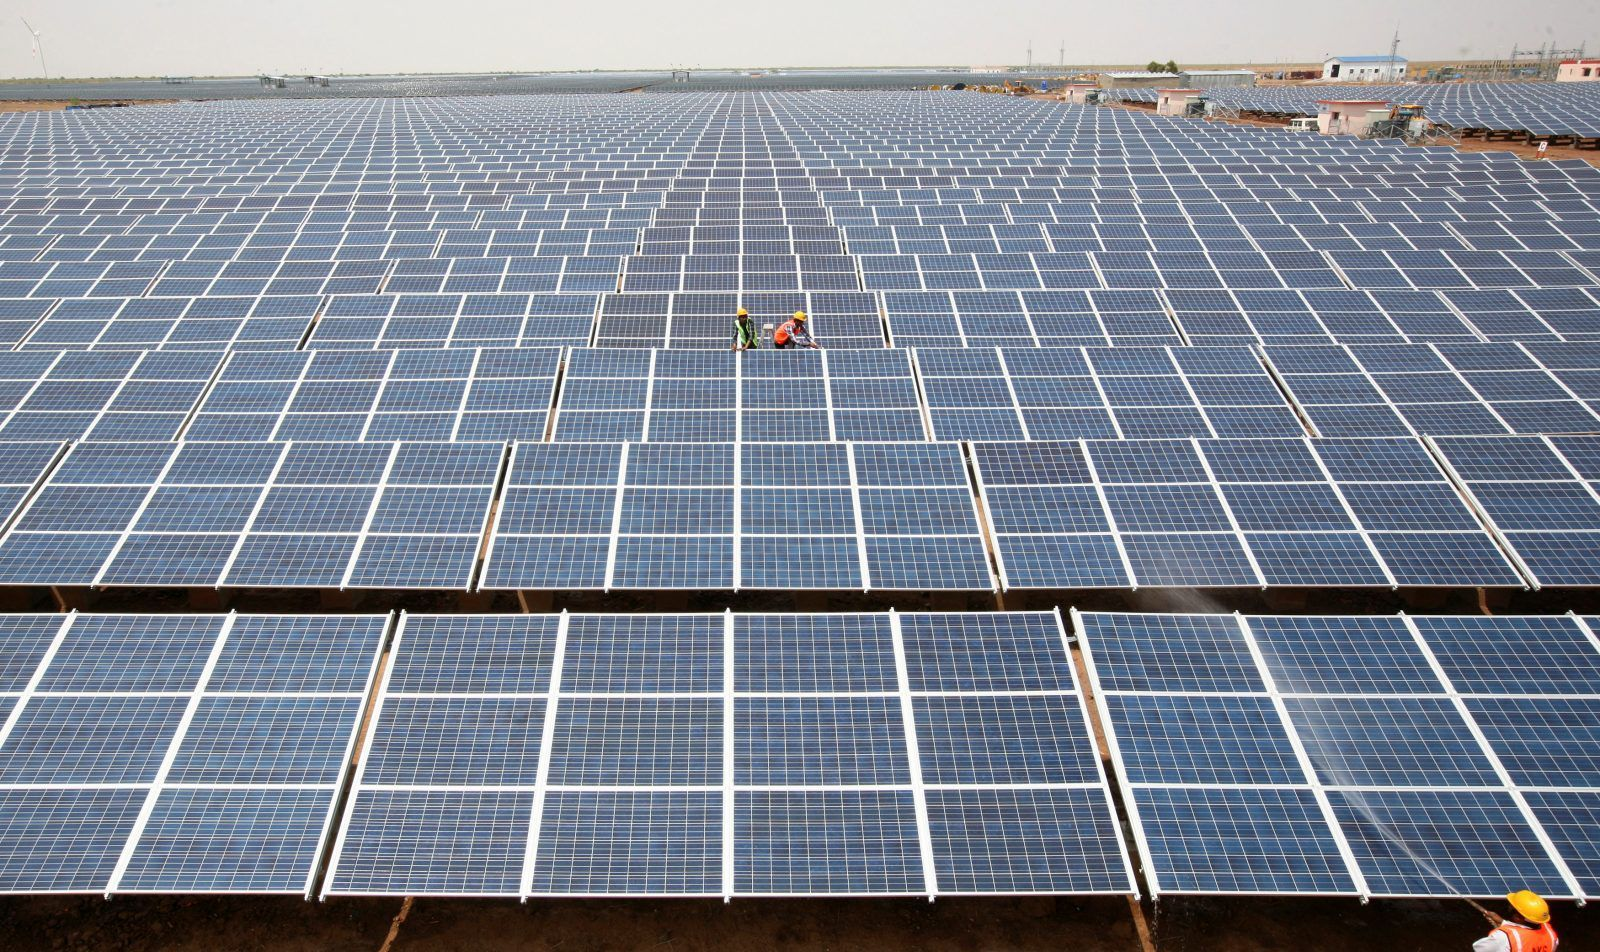 Solar Is Now Cheaper Than Coal Based Electricity In India But The Math Makes No Sense Itse